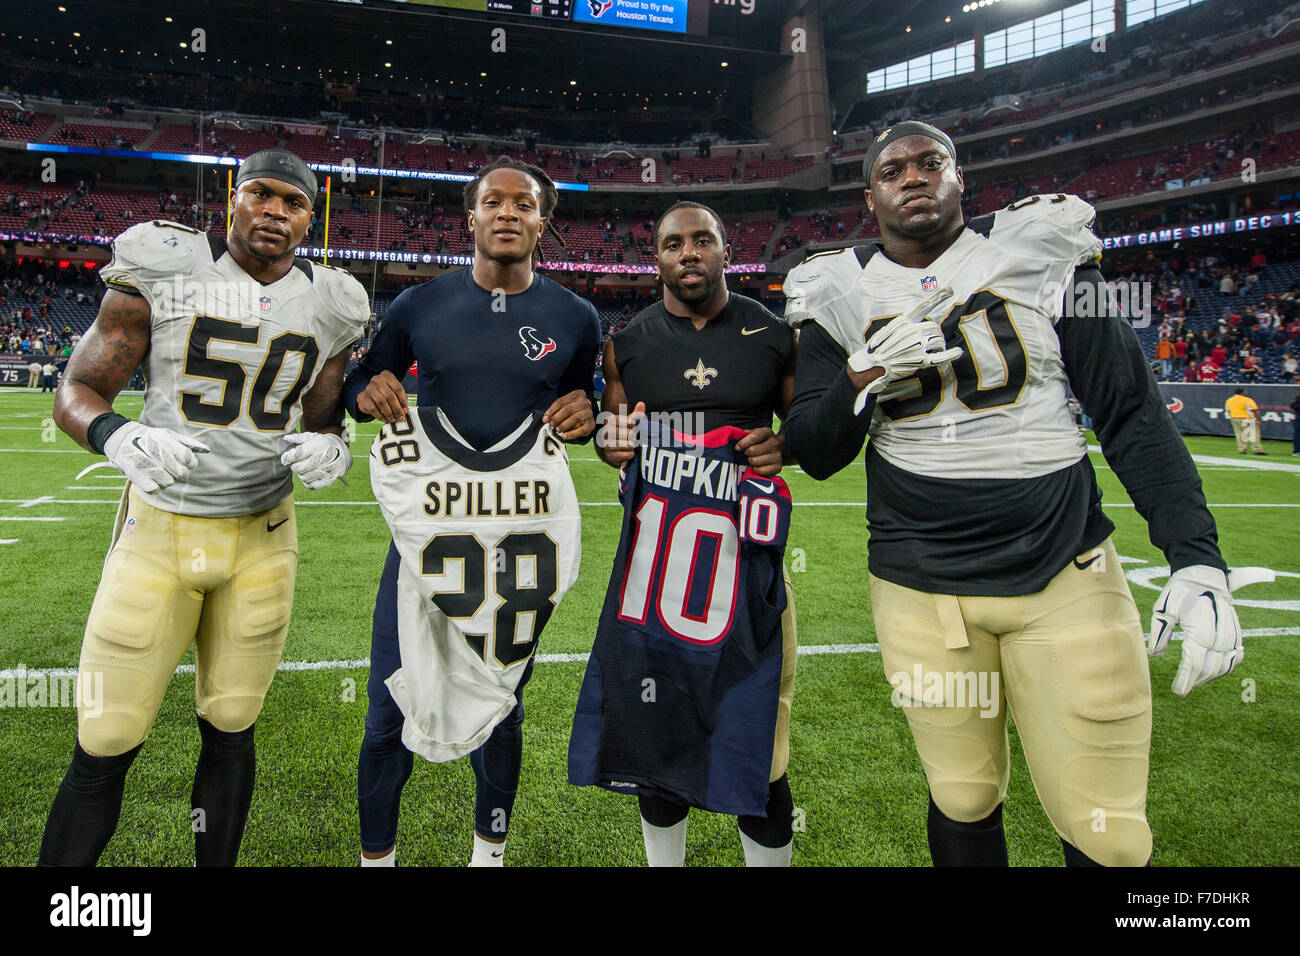 Nike jerseys for sale - Houston, Texas, Usa. 29th Nov, 2015. Houston Texans Wide Receiver ...